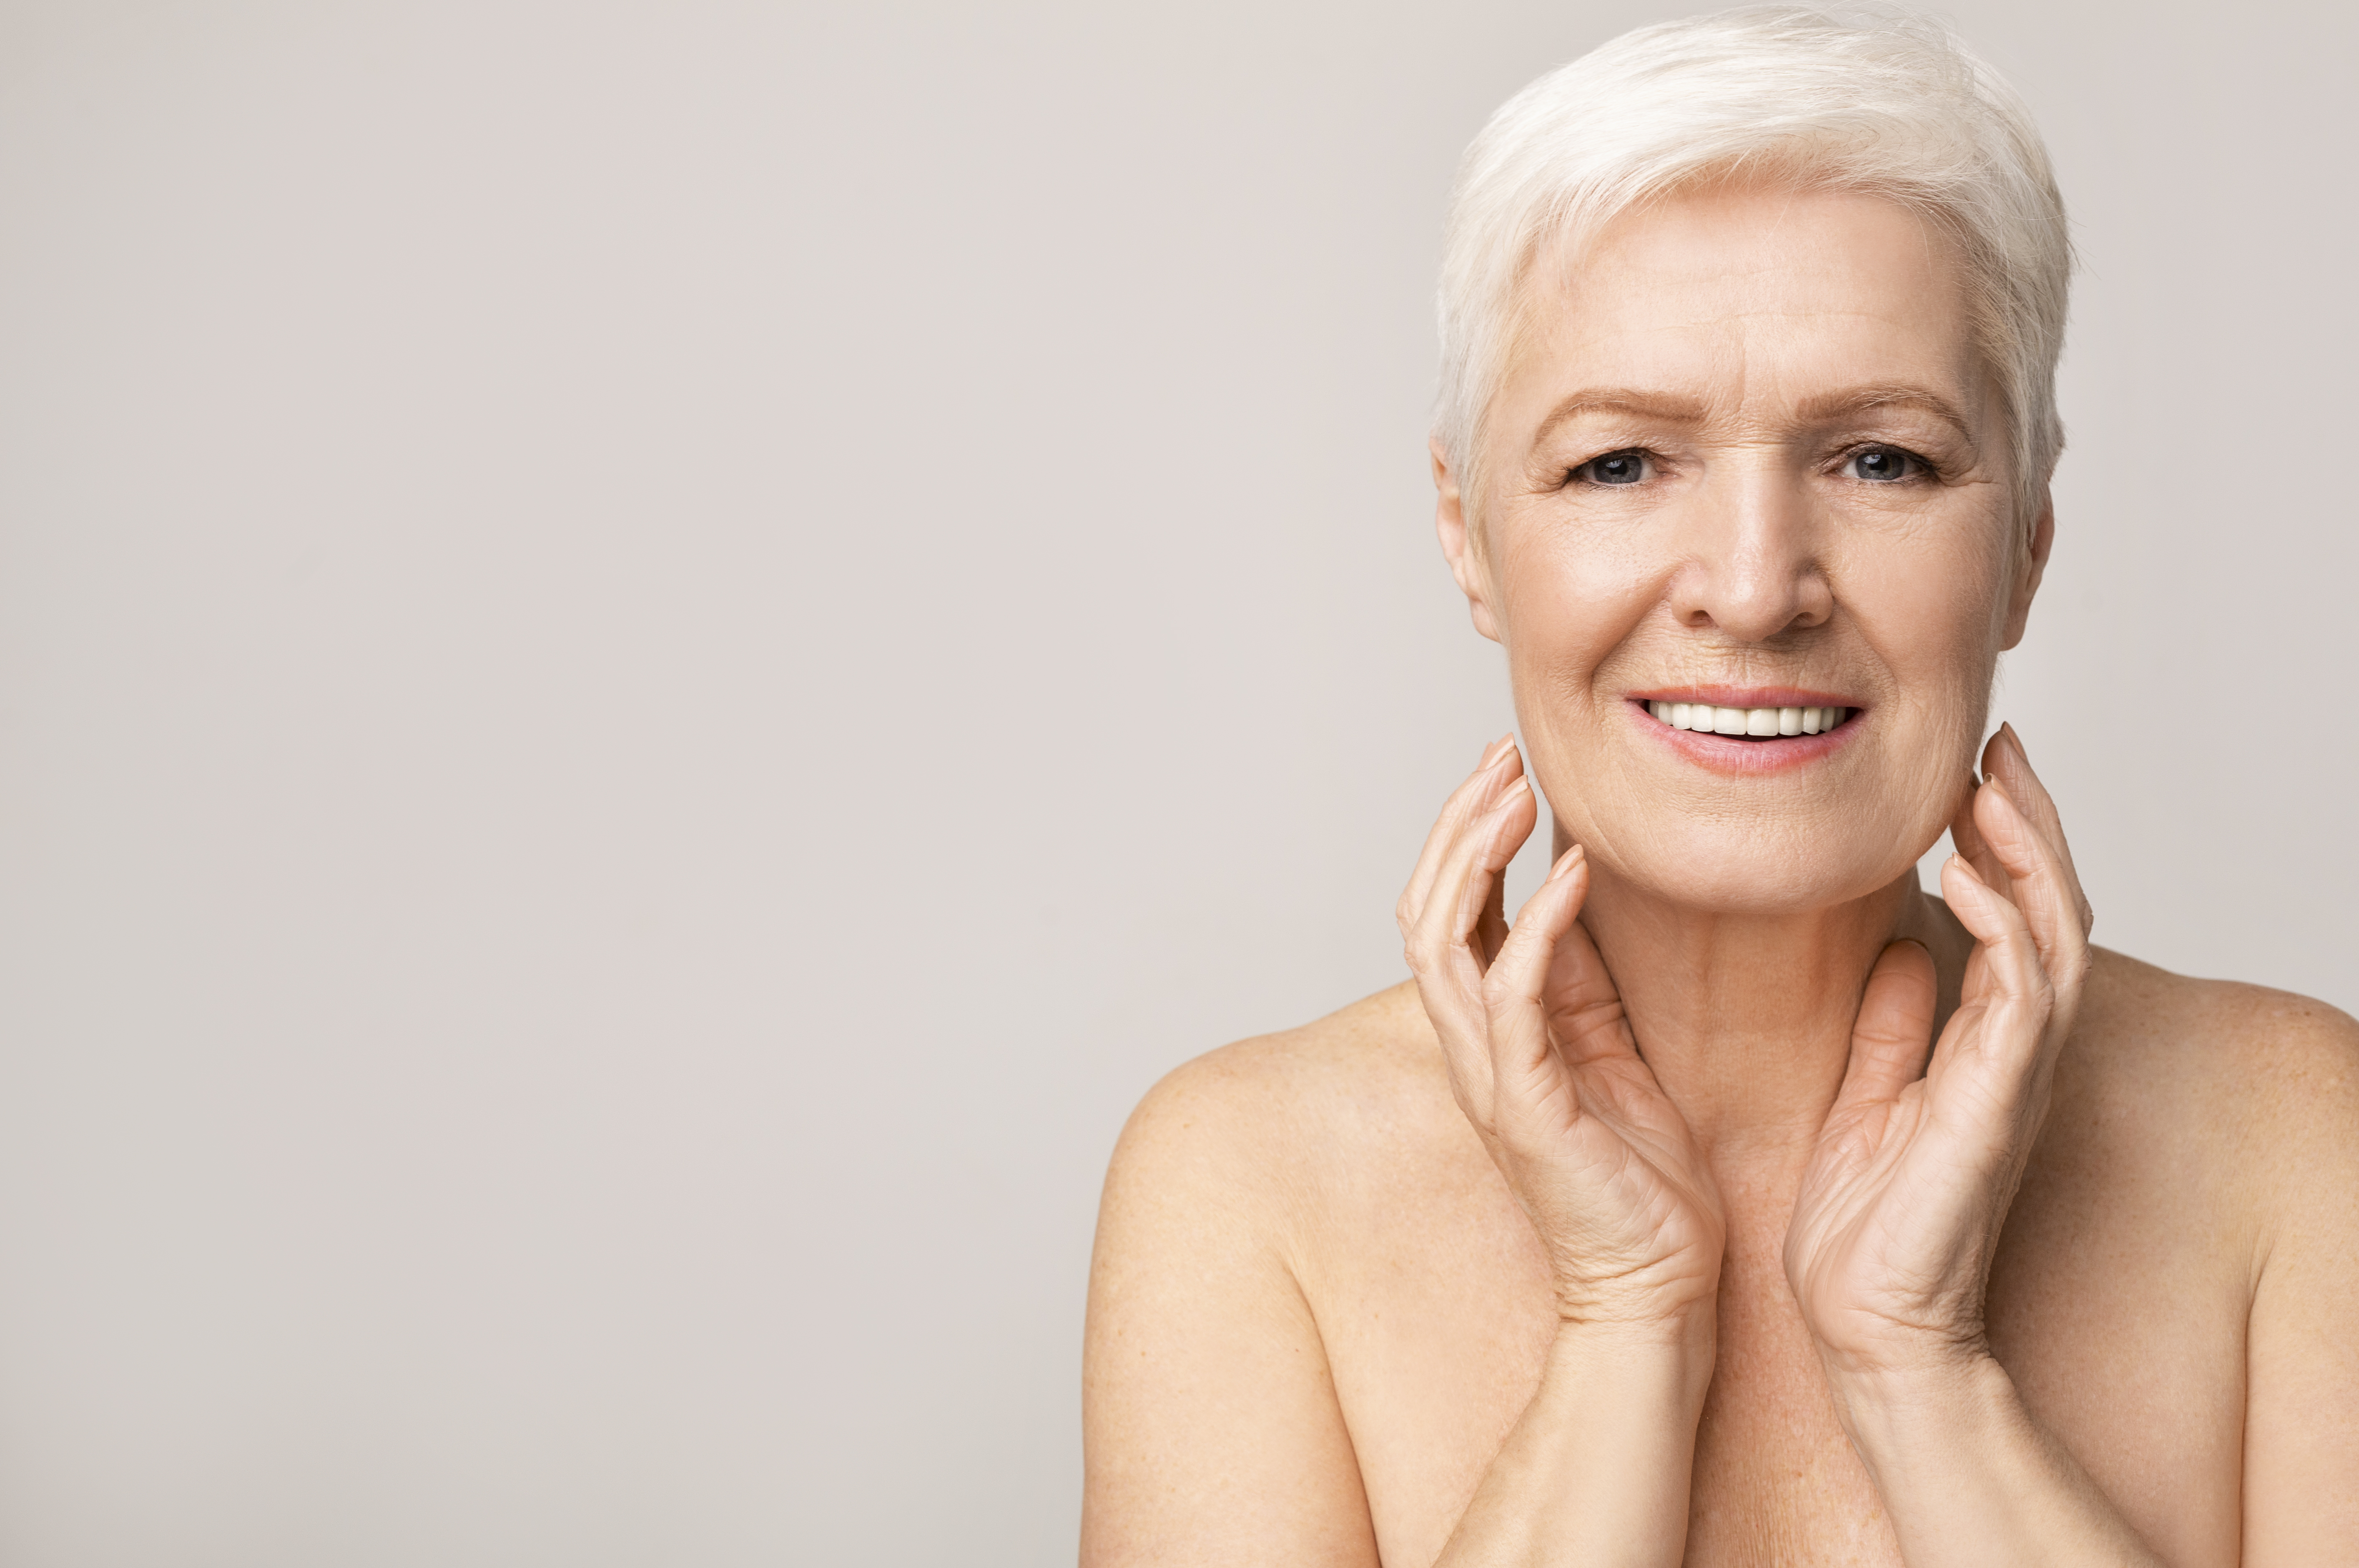 Portrait of attractive senior woman touching her chin and looking to camera over light studio background, free space